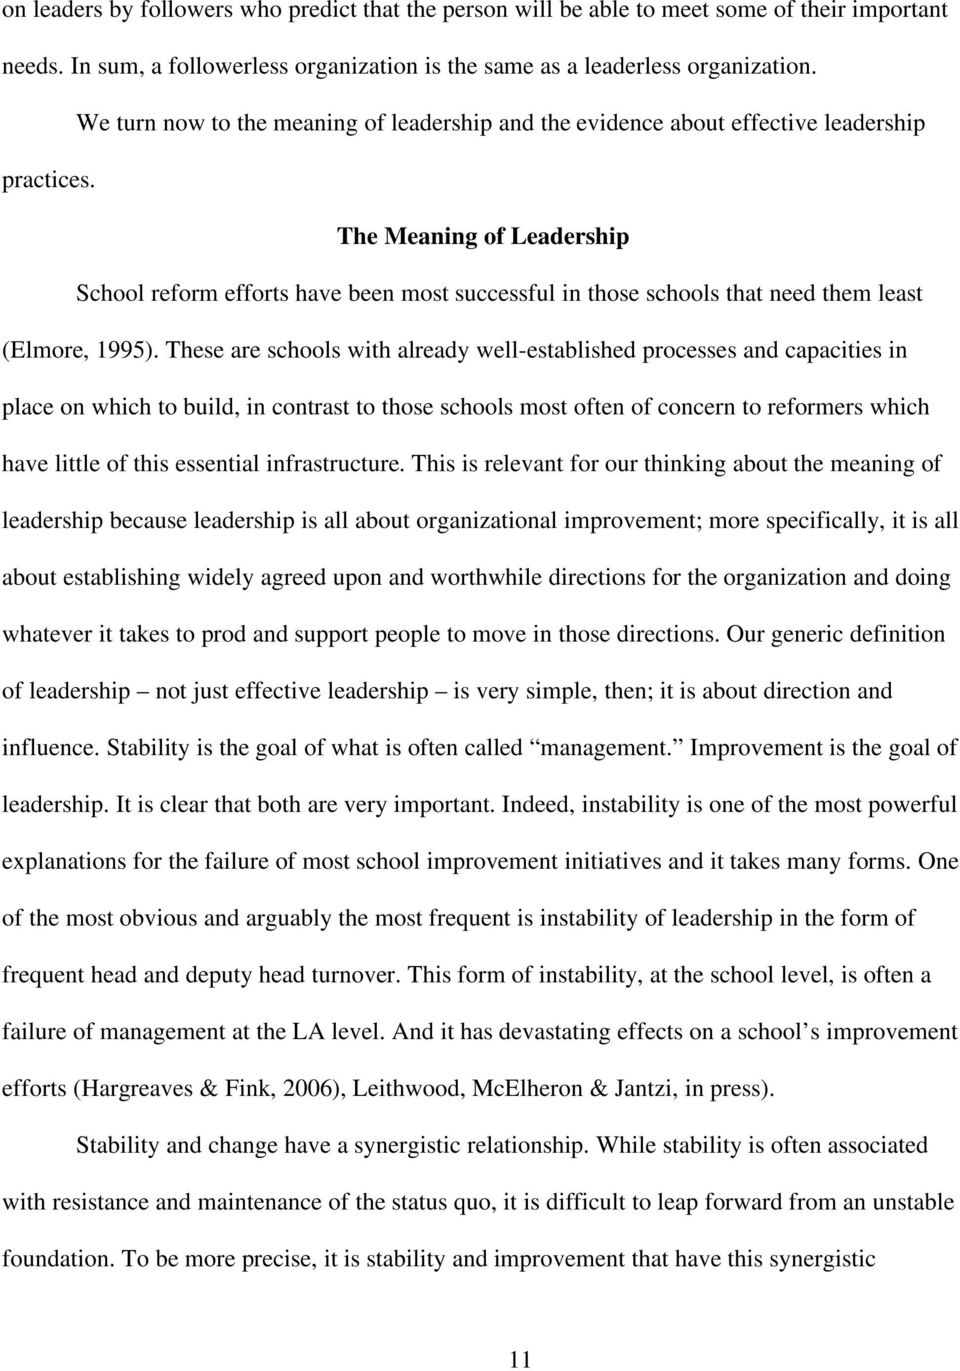 The Meaning of Leadership School reform efforts have been most successful in those schools that need them least (Elmore, 1995).